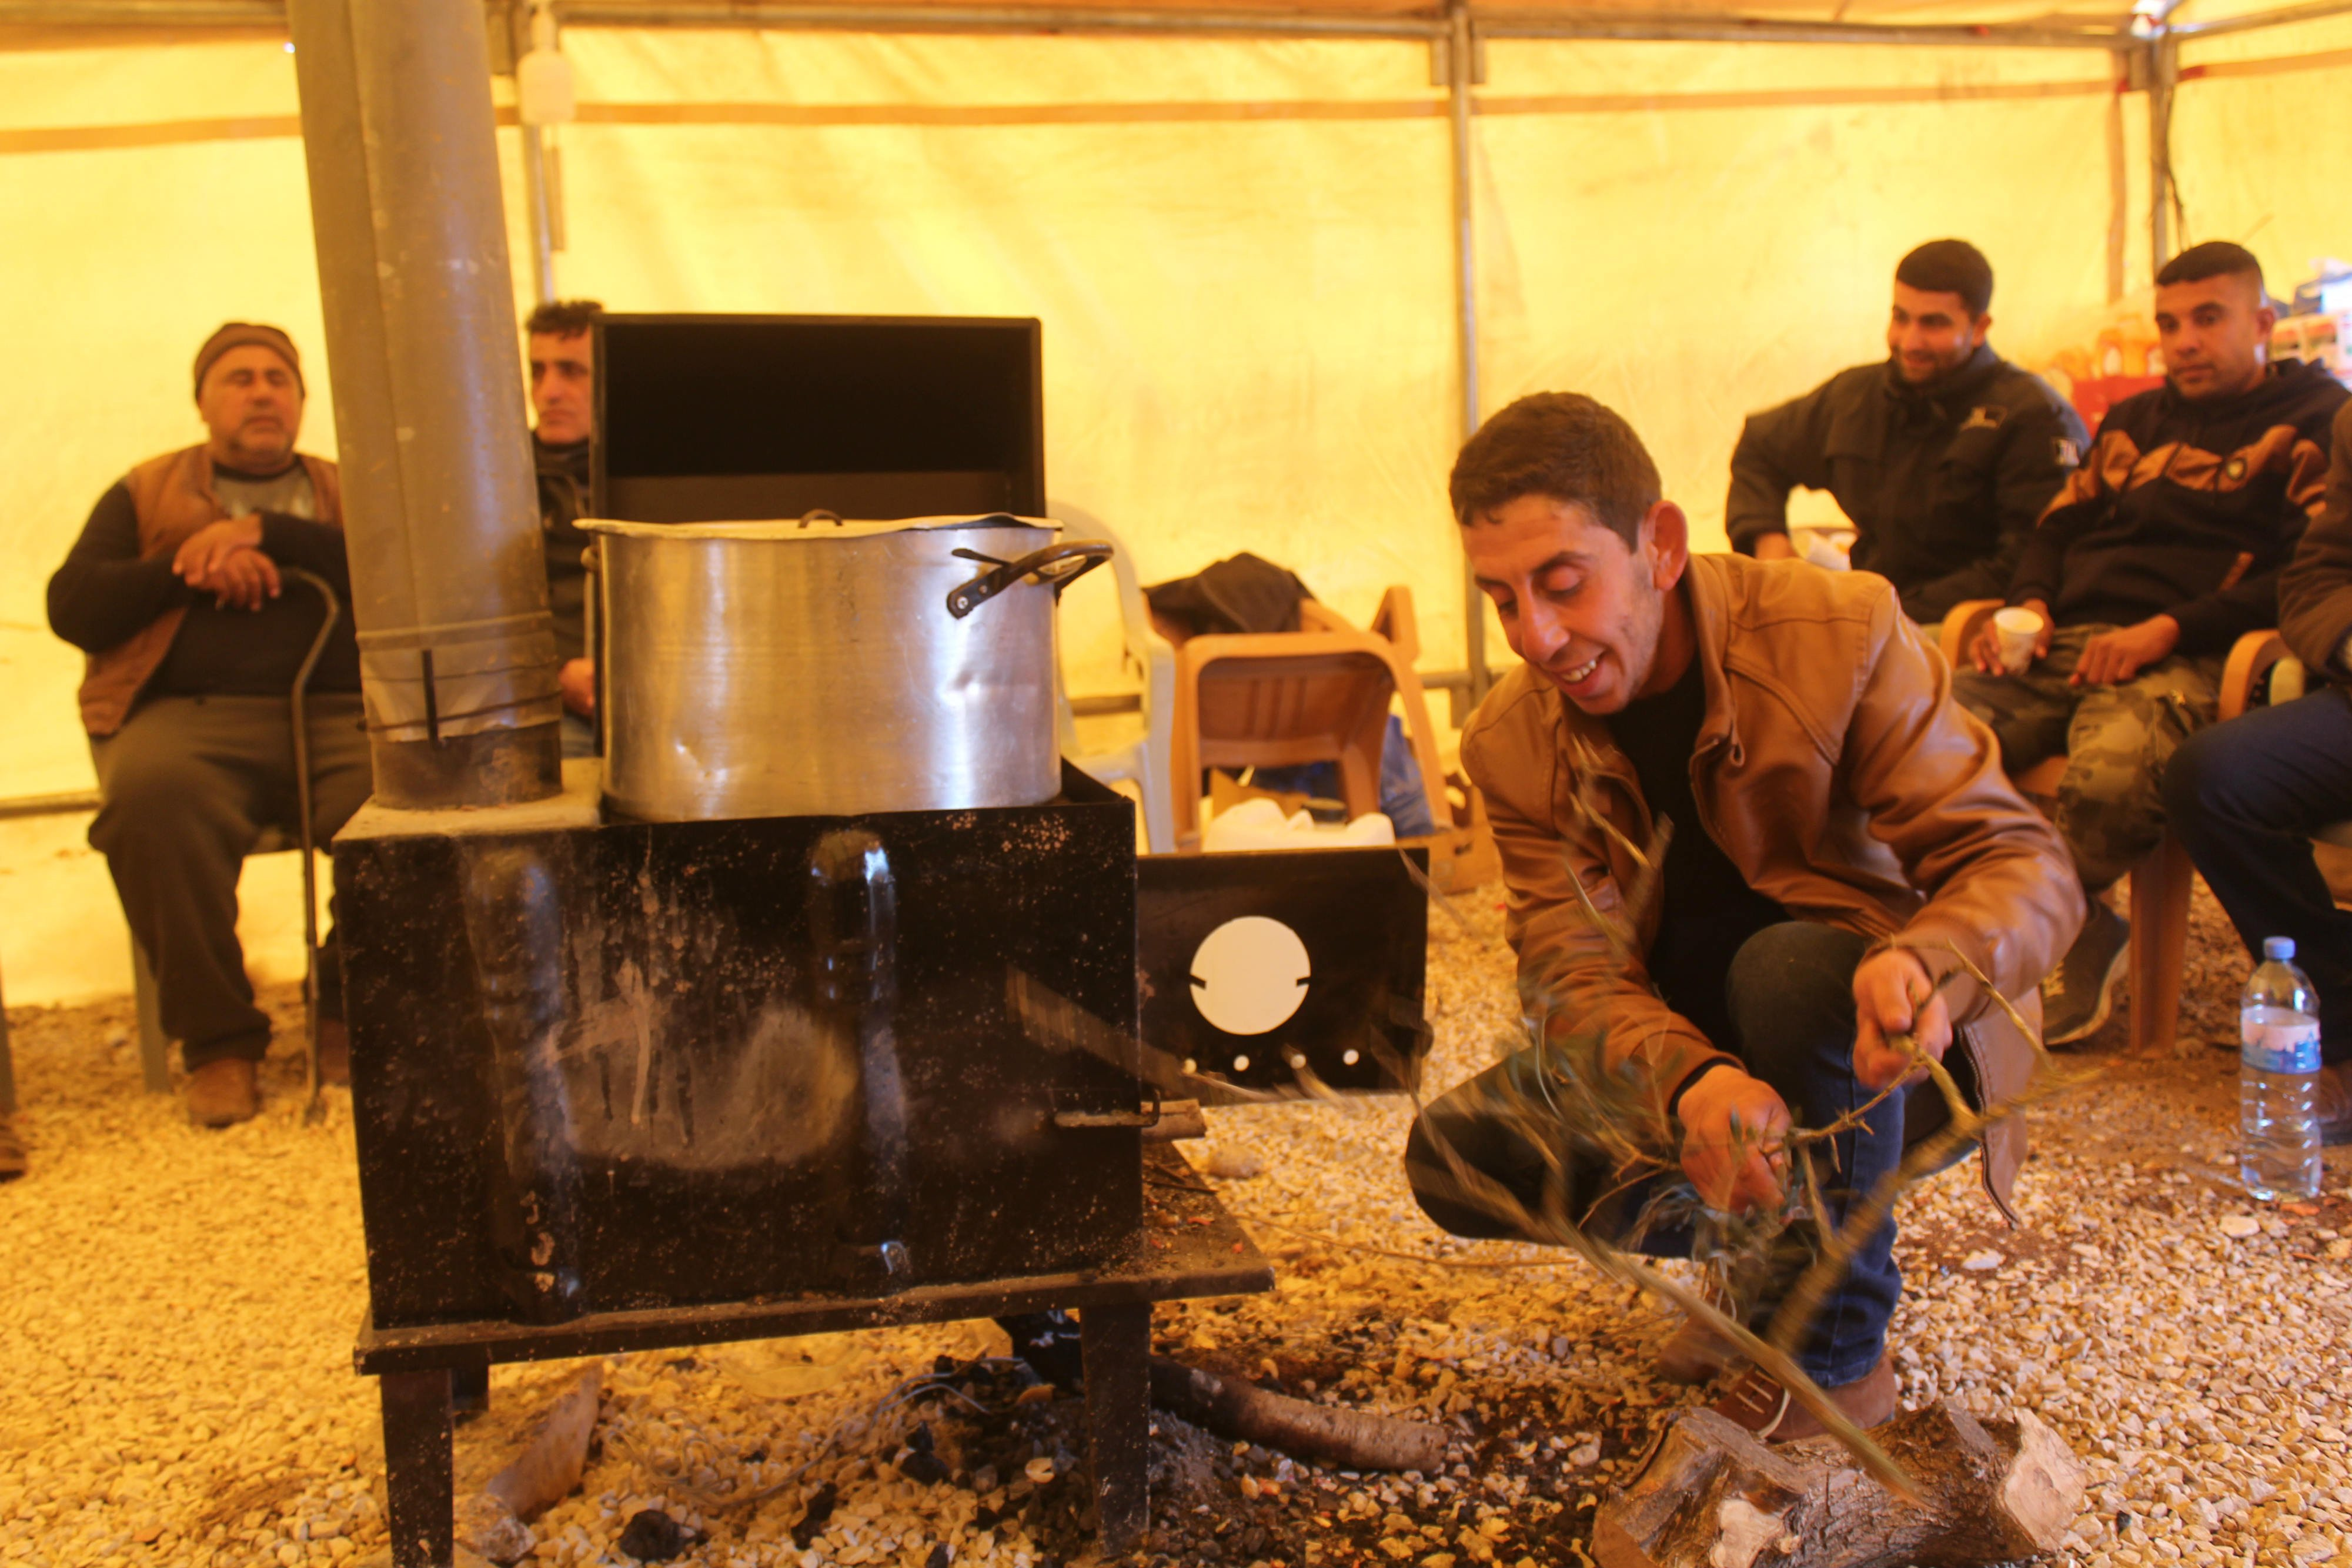 Inside the tent, volunteers make Freekeh soup, a popular Palestinian food usually prepared in the winter as it provides the body with energy and warmth (MEE/Shatha Hammad)